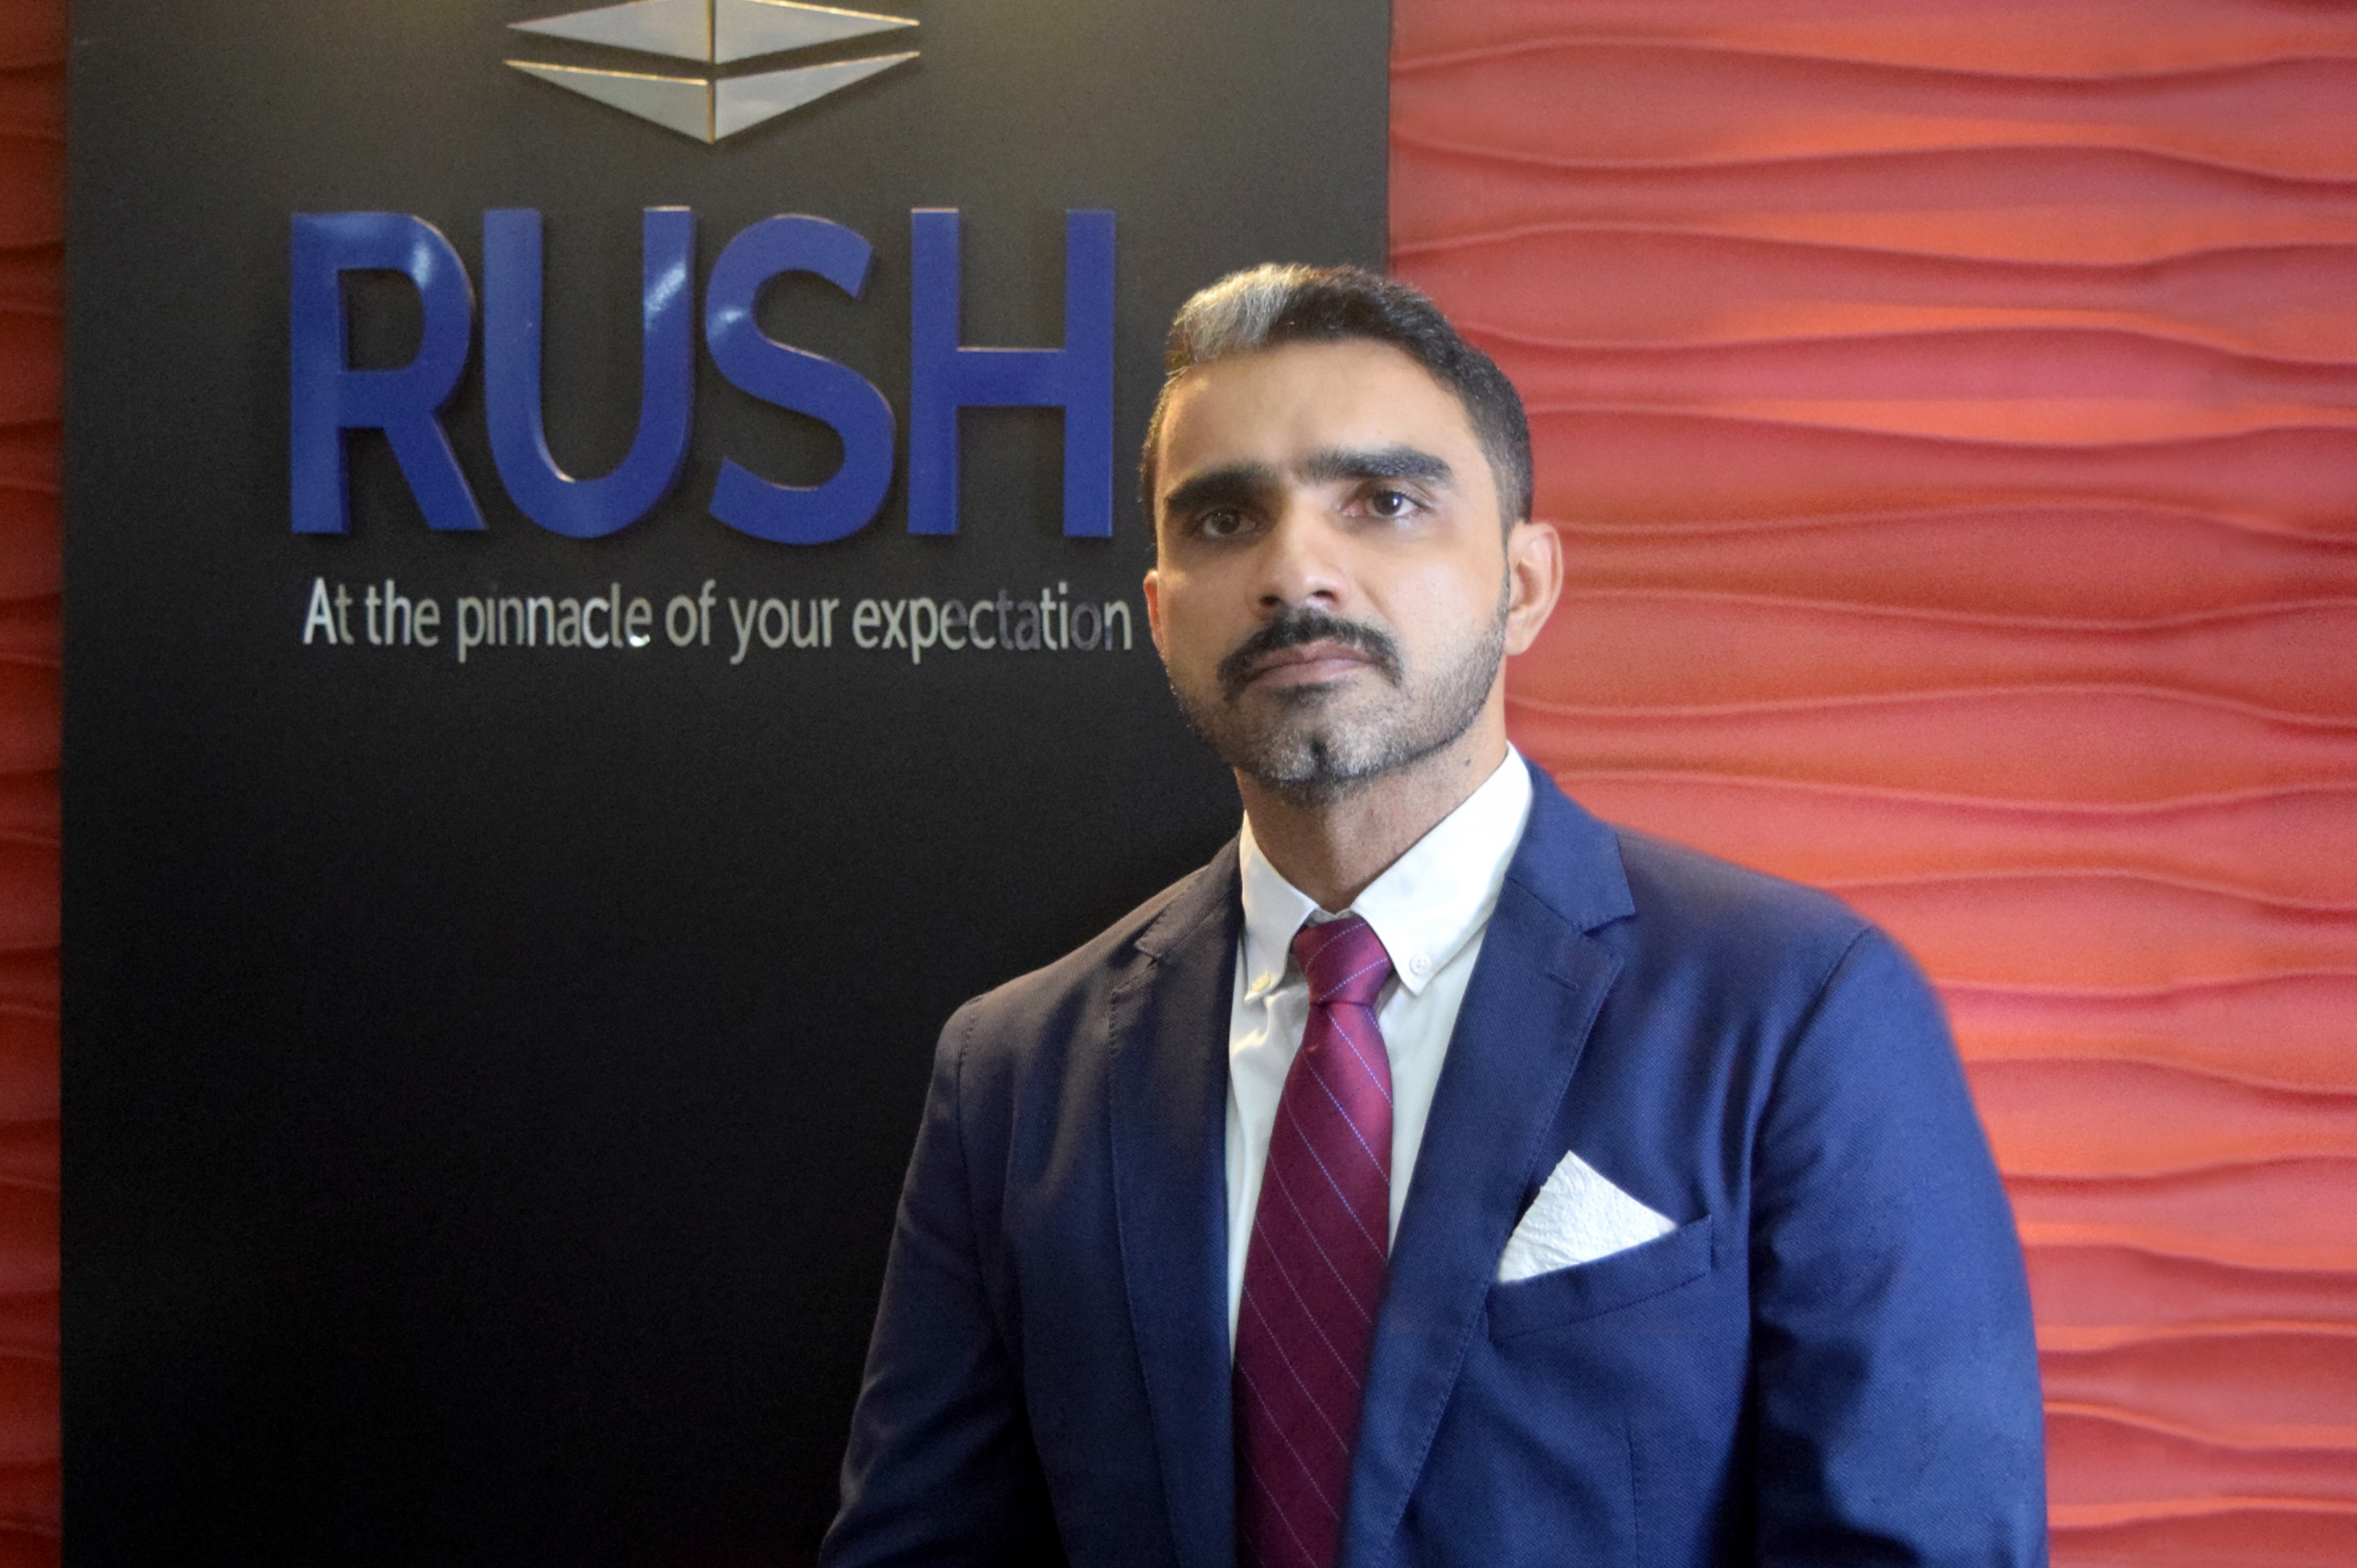 Making the Best out of Real Estate – Managing Director of Rush Lanka Group, Sabeer Iqbal